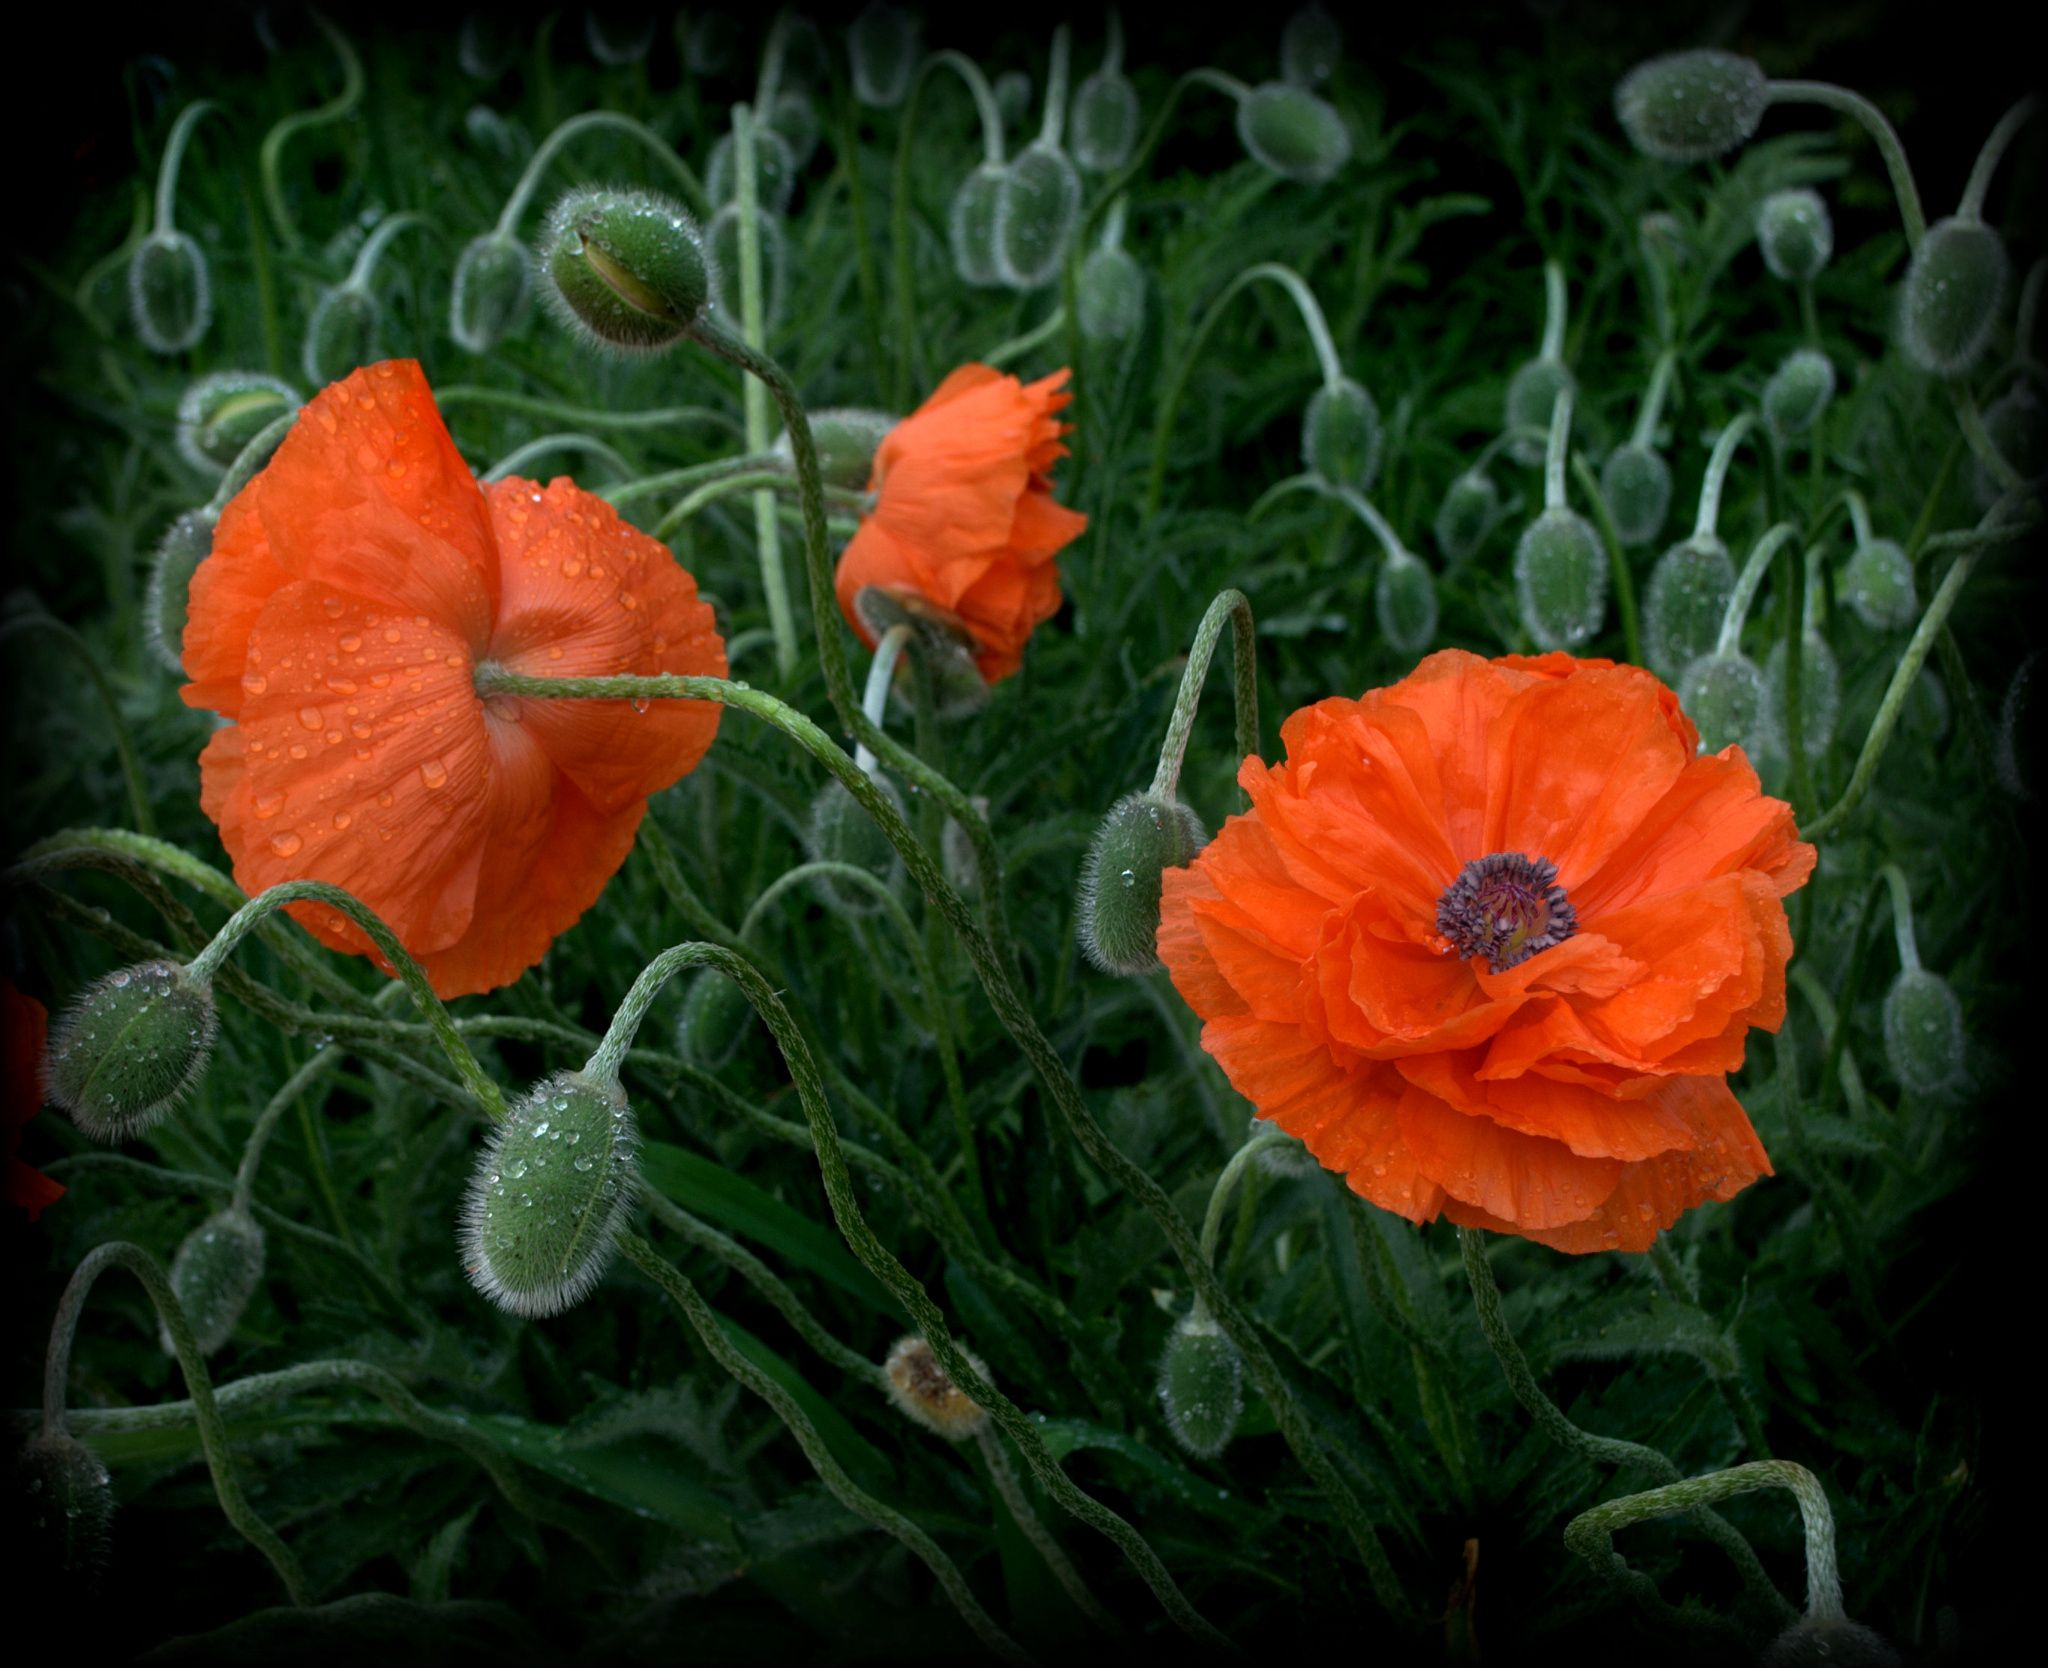 Fotografa Orange Poppy Flowers Por Nate A En 500px Photography I